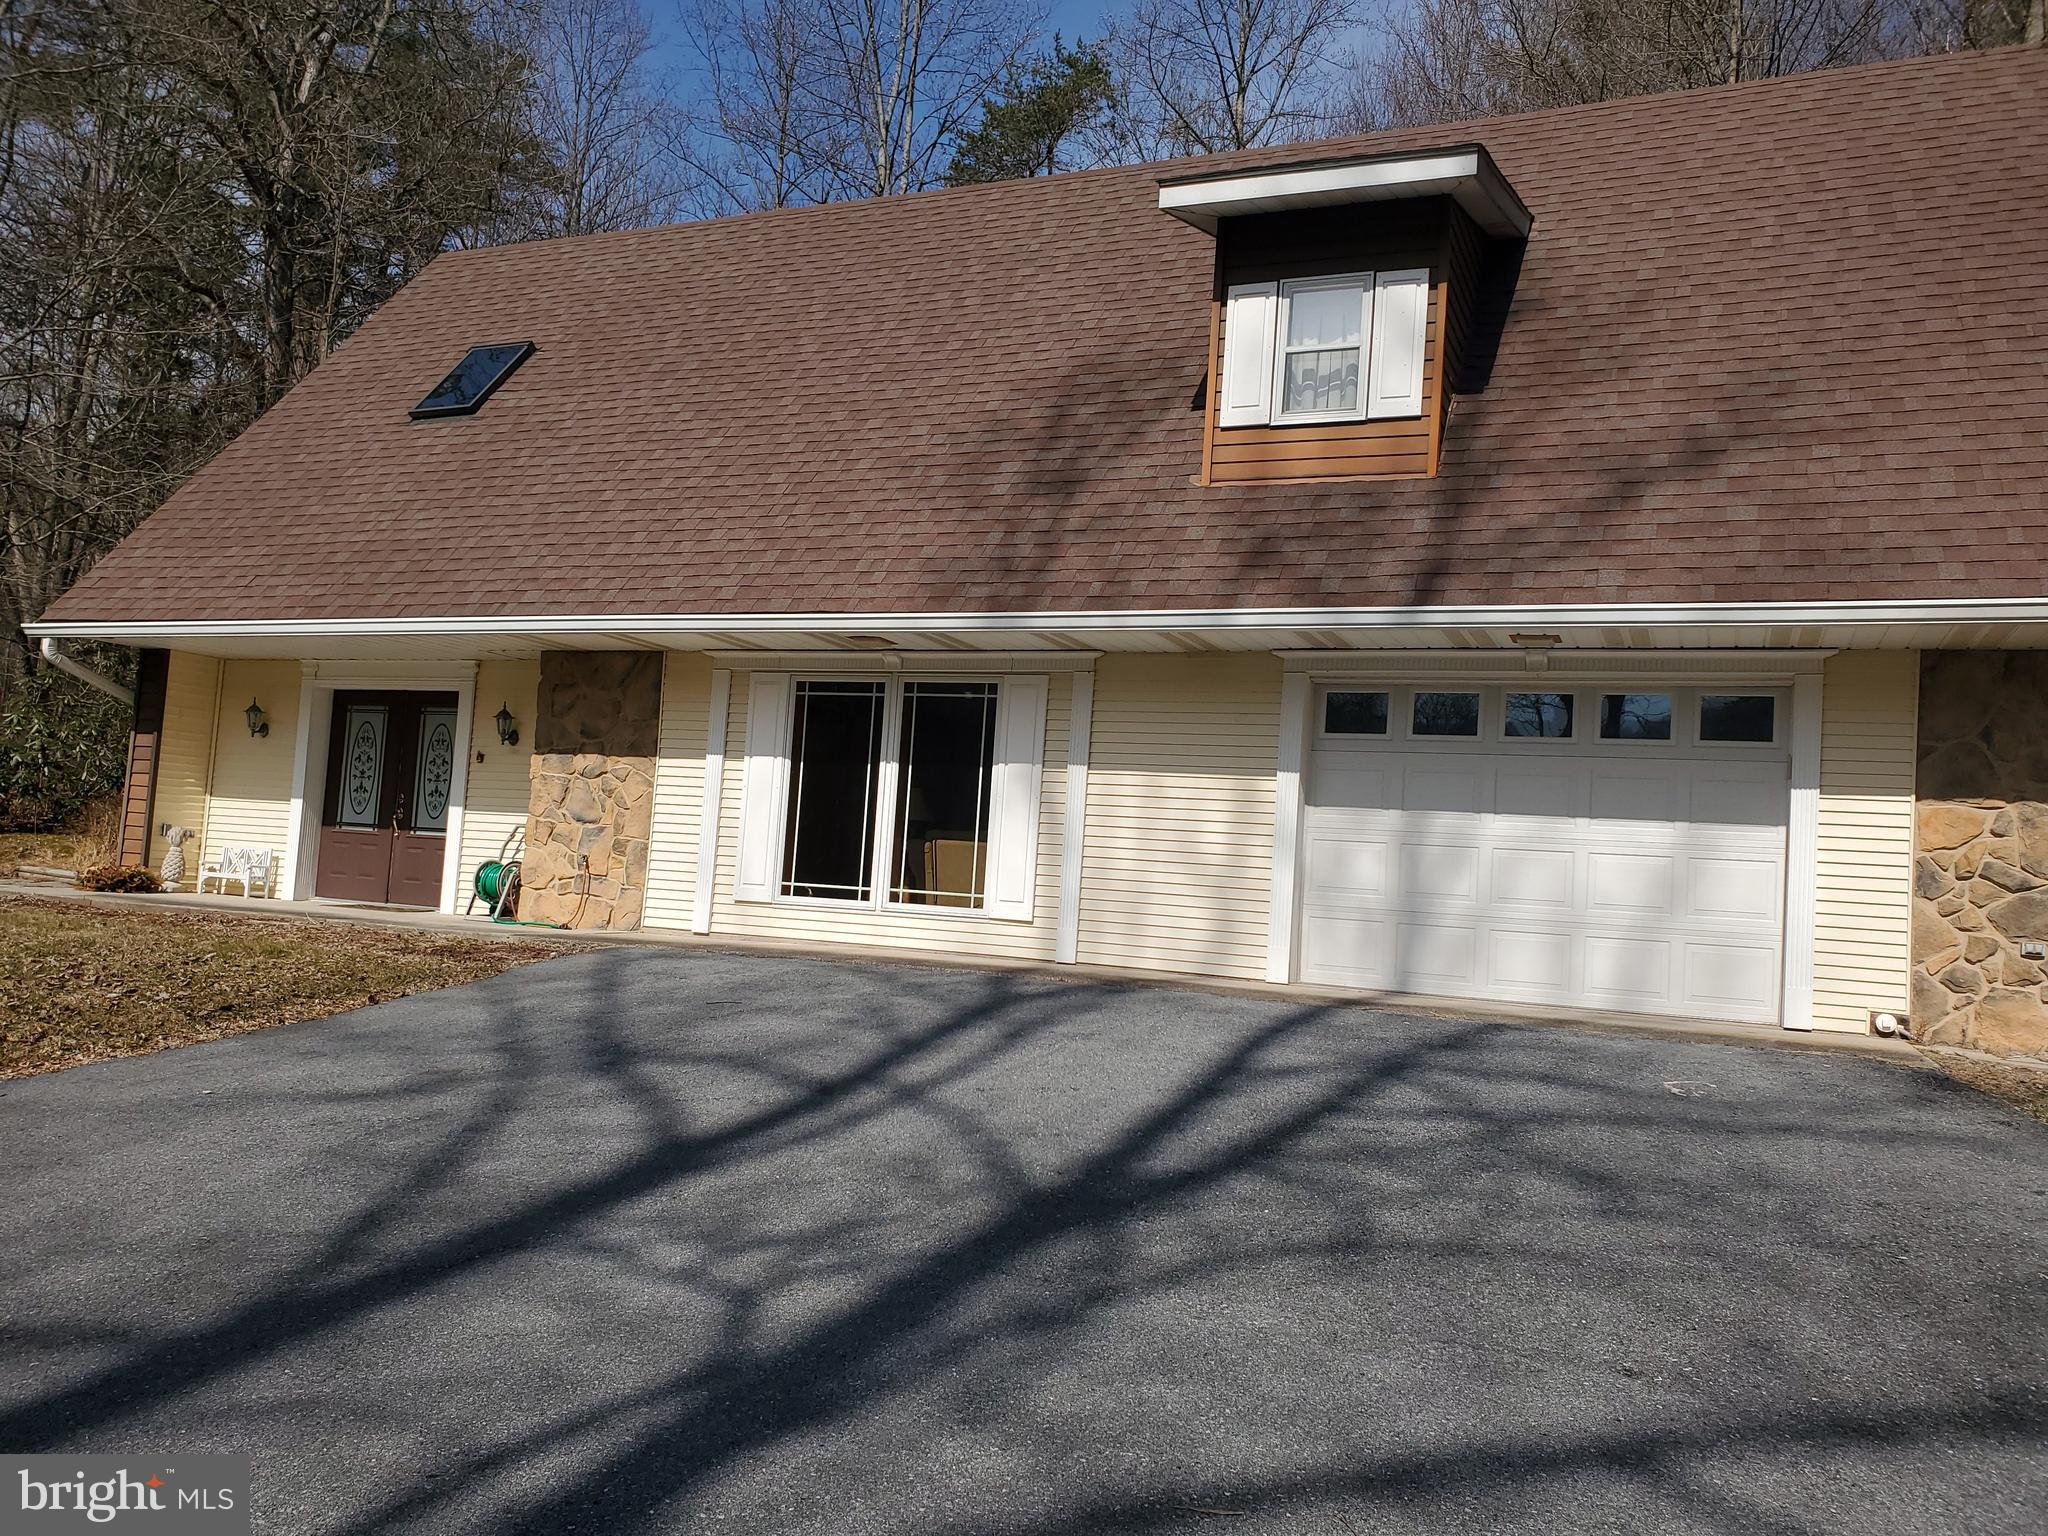 1850 CLARKS VALLEY ROAD, DAUPHIN, PA 17018